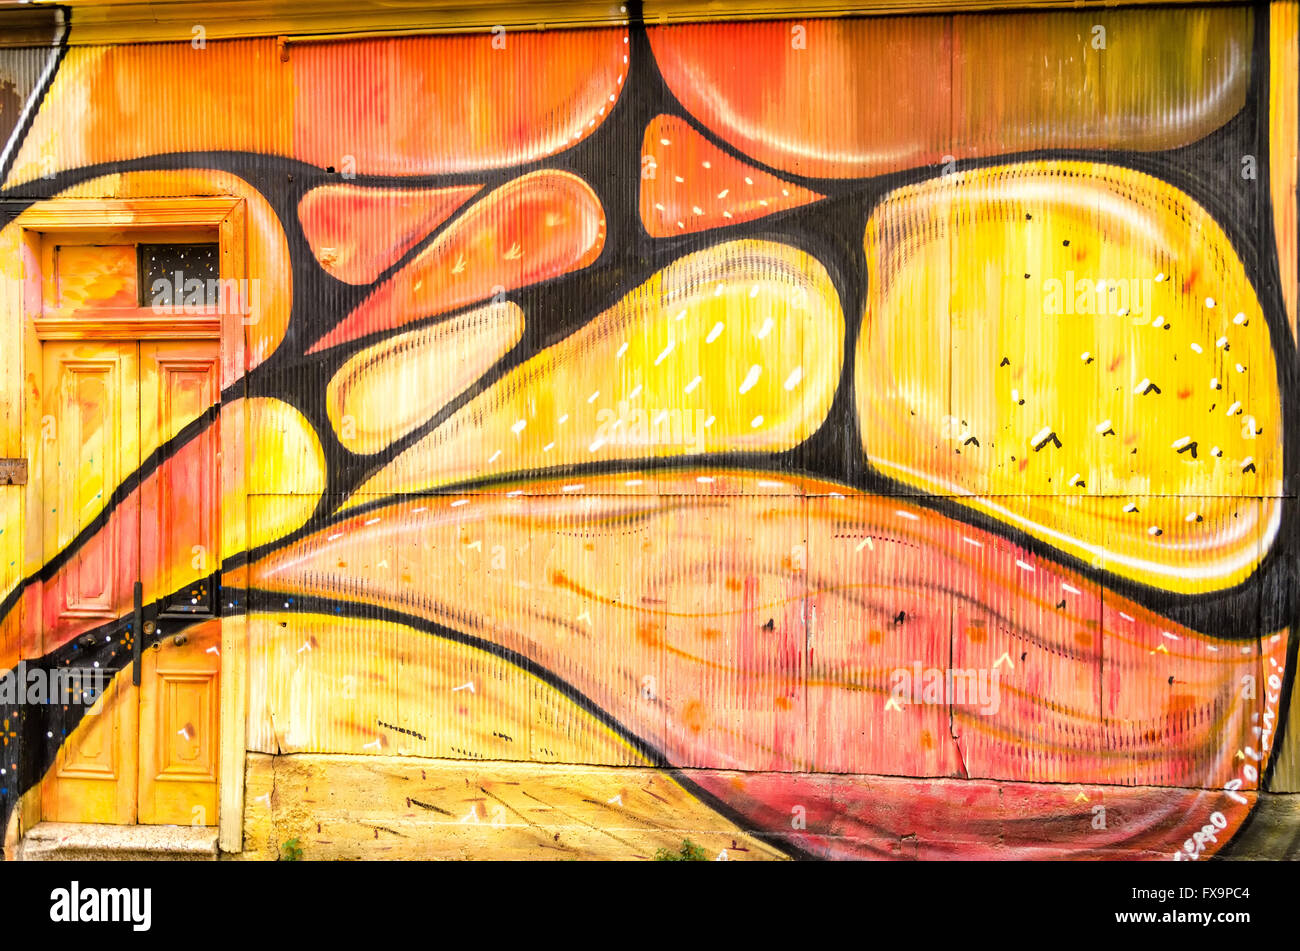 Colorful Mural Painting On South Stock Photos & Colorful Mural ...